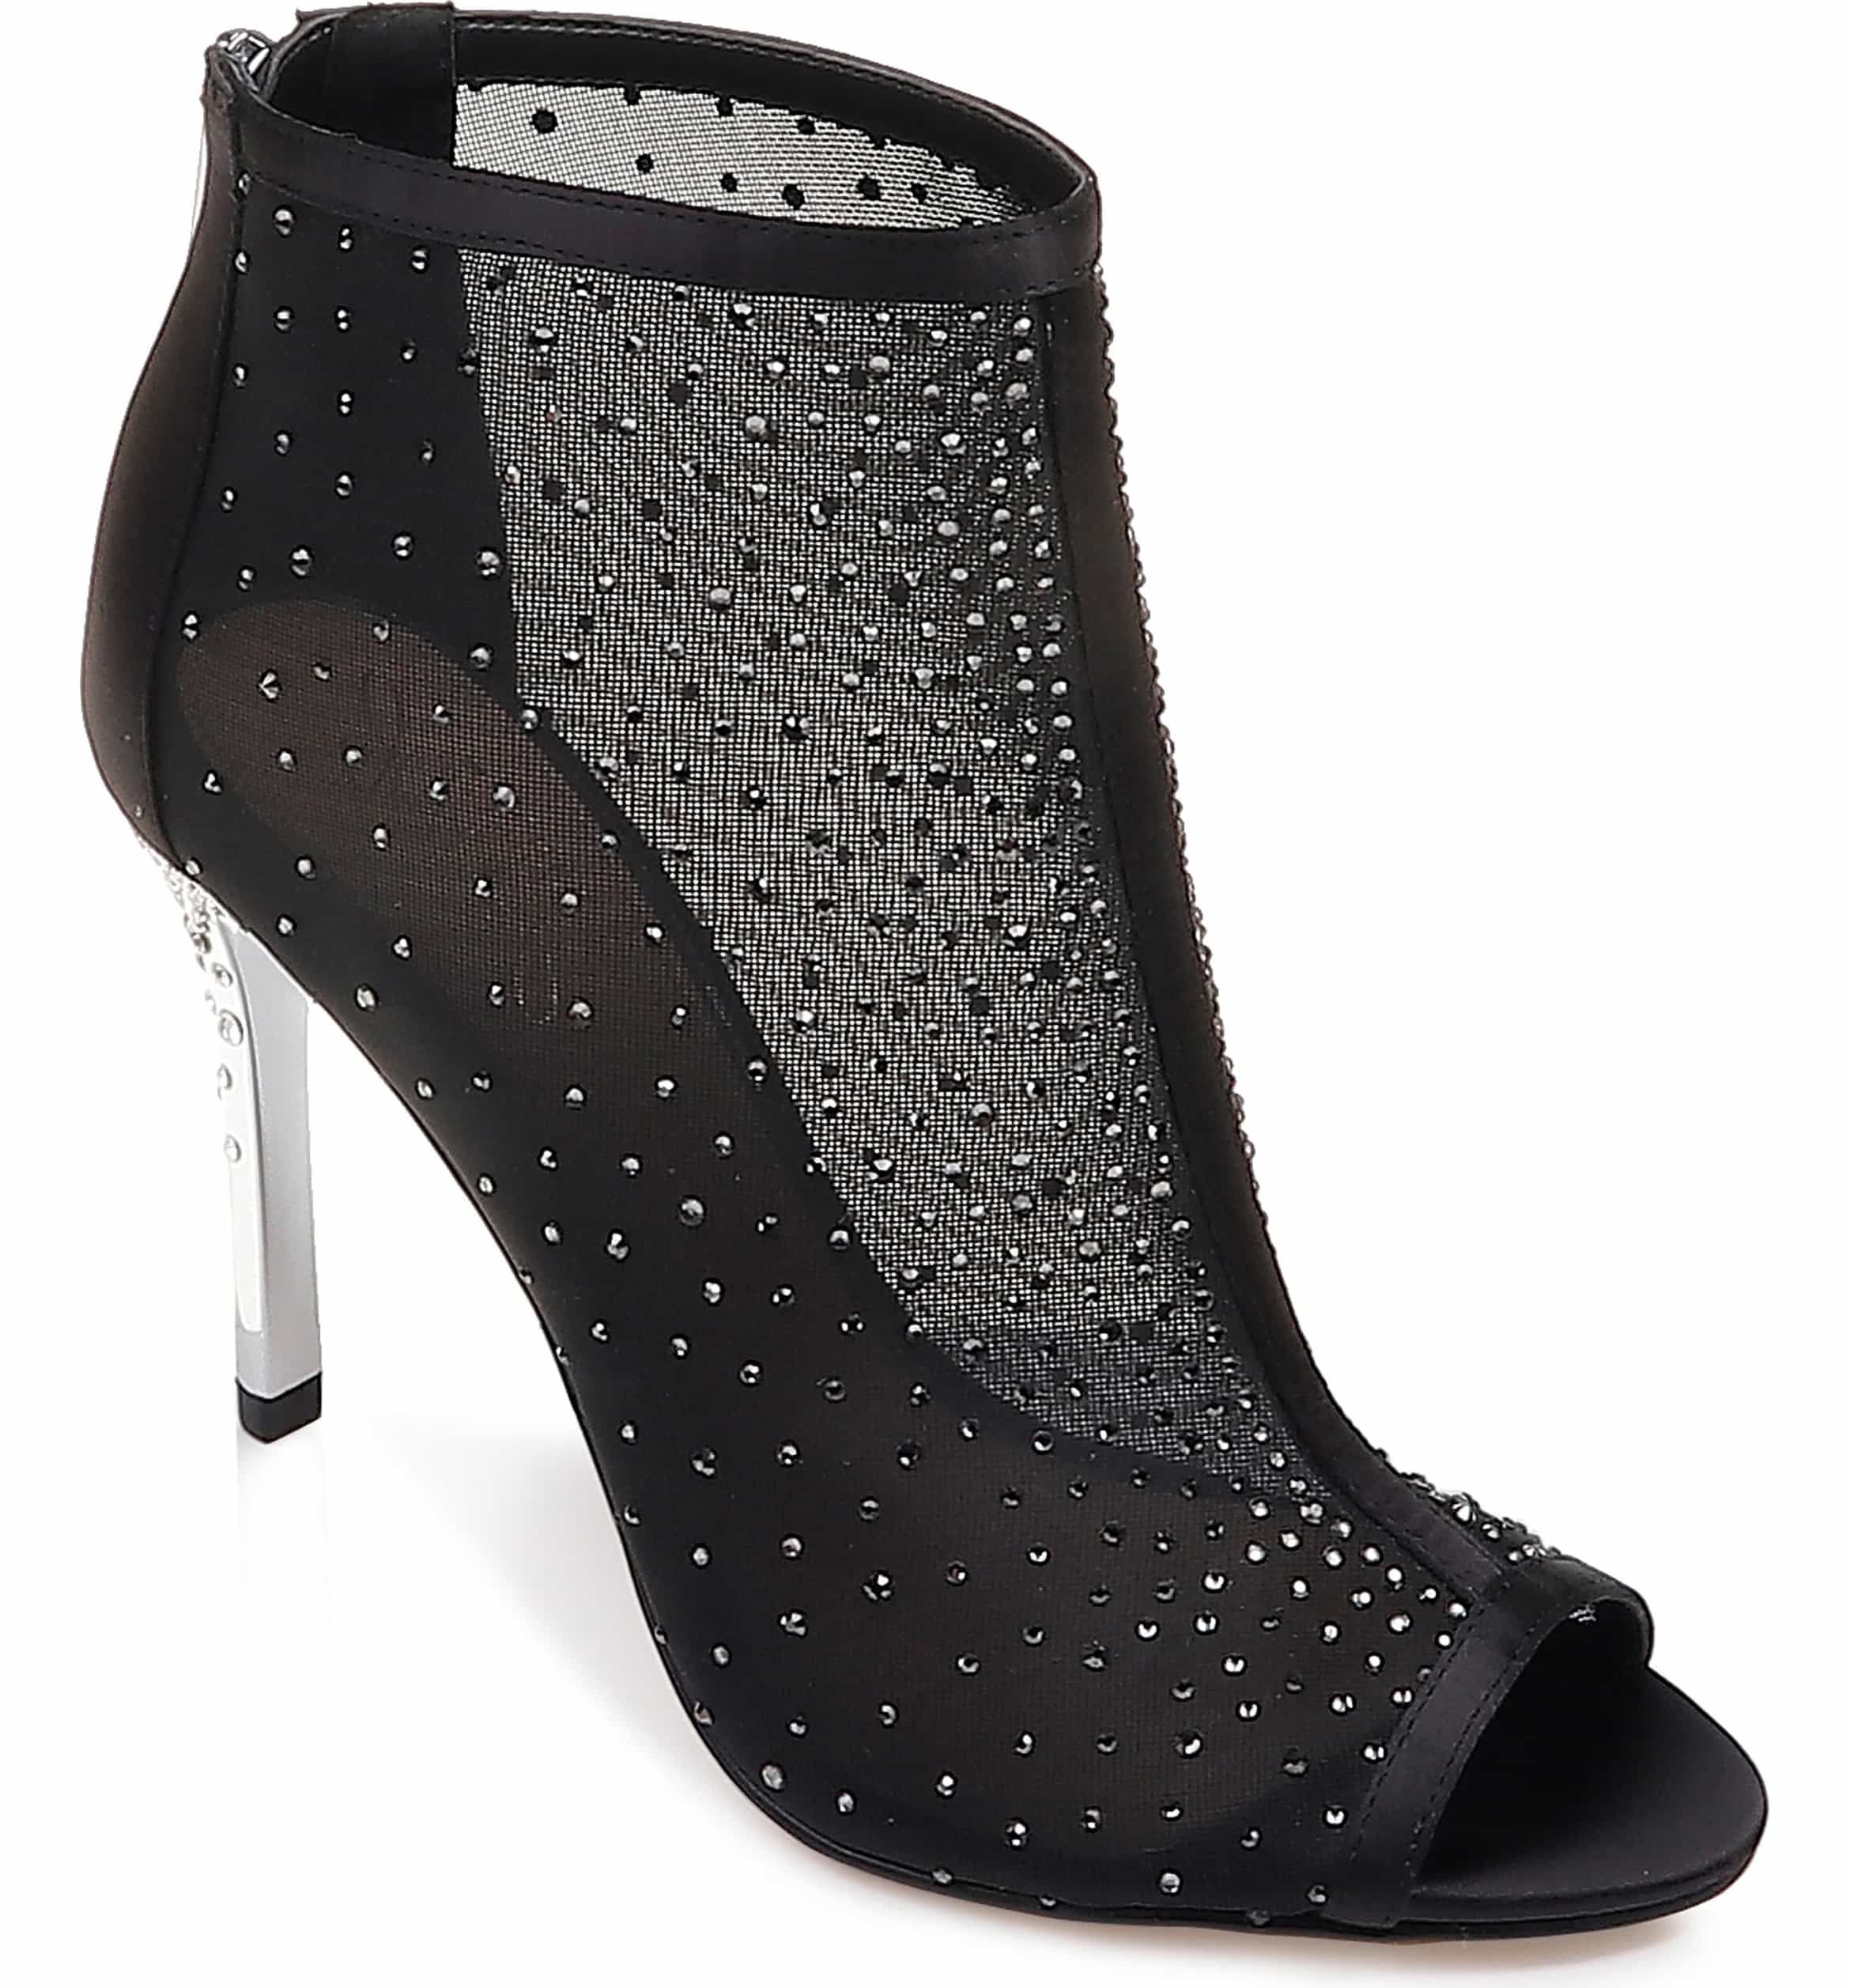 44fafbe758bfb Jodie Crystal Embellished Mesh Bootie, Main, color, BLACK CRYSTAL SATIN